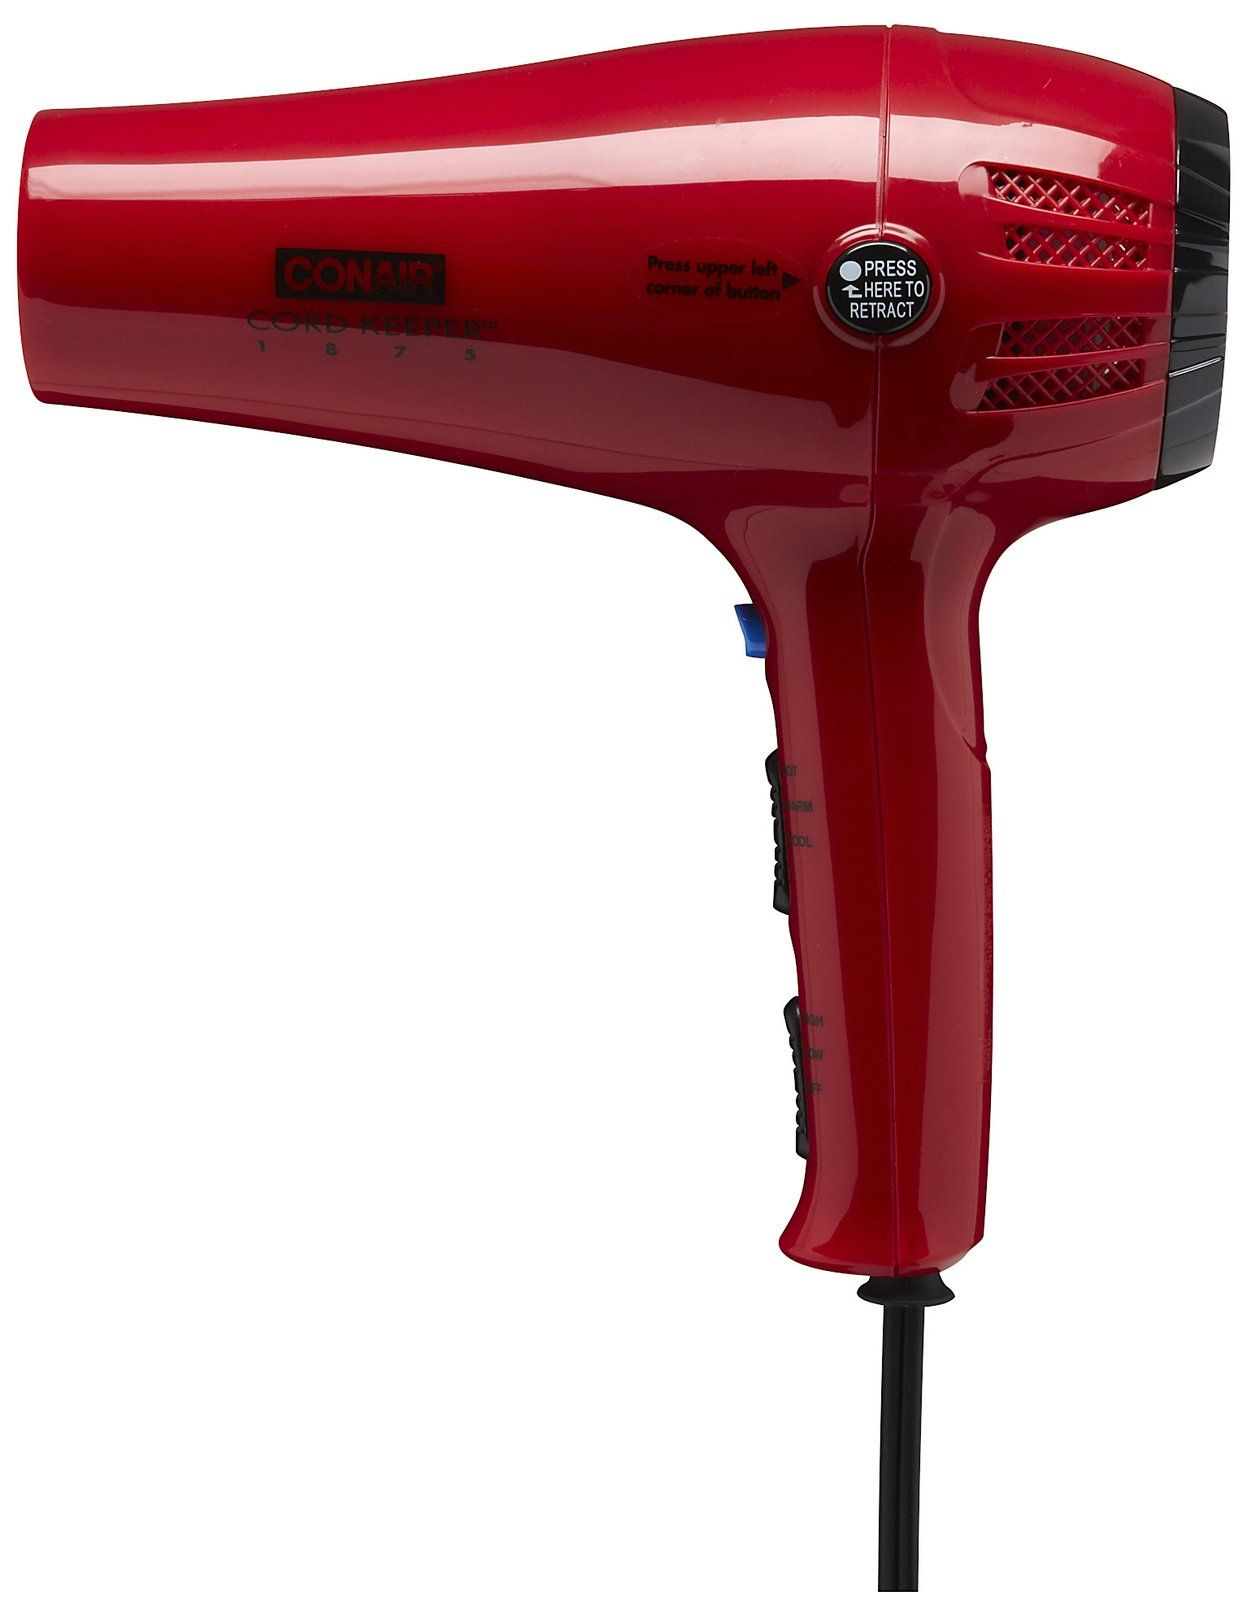 Conair Ionic Ceramic Cord Keeper Hairdryer Red Best Price Hair Dryer Tool Bench Ceramics